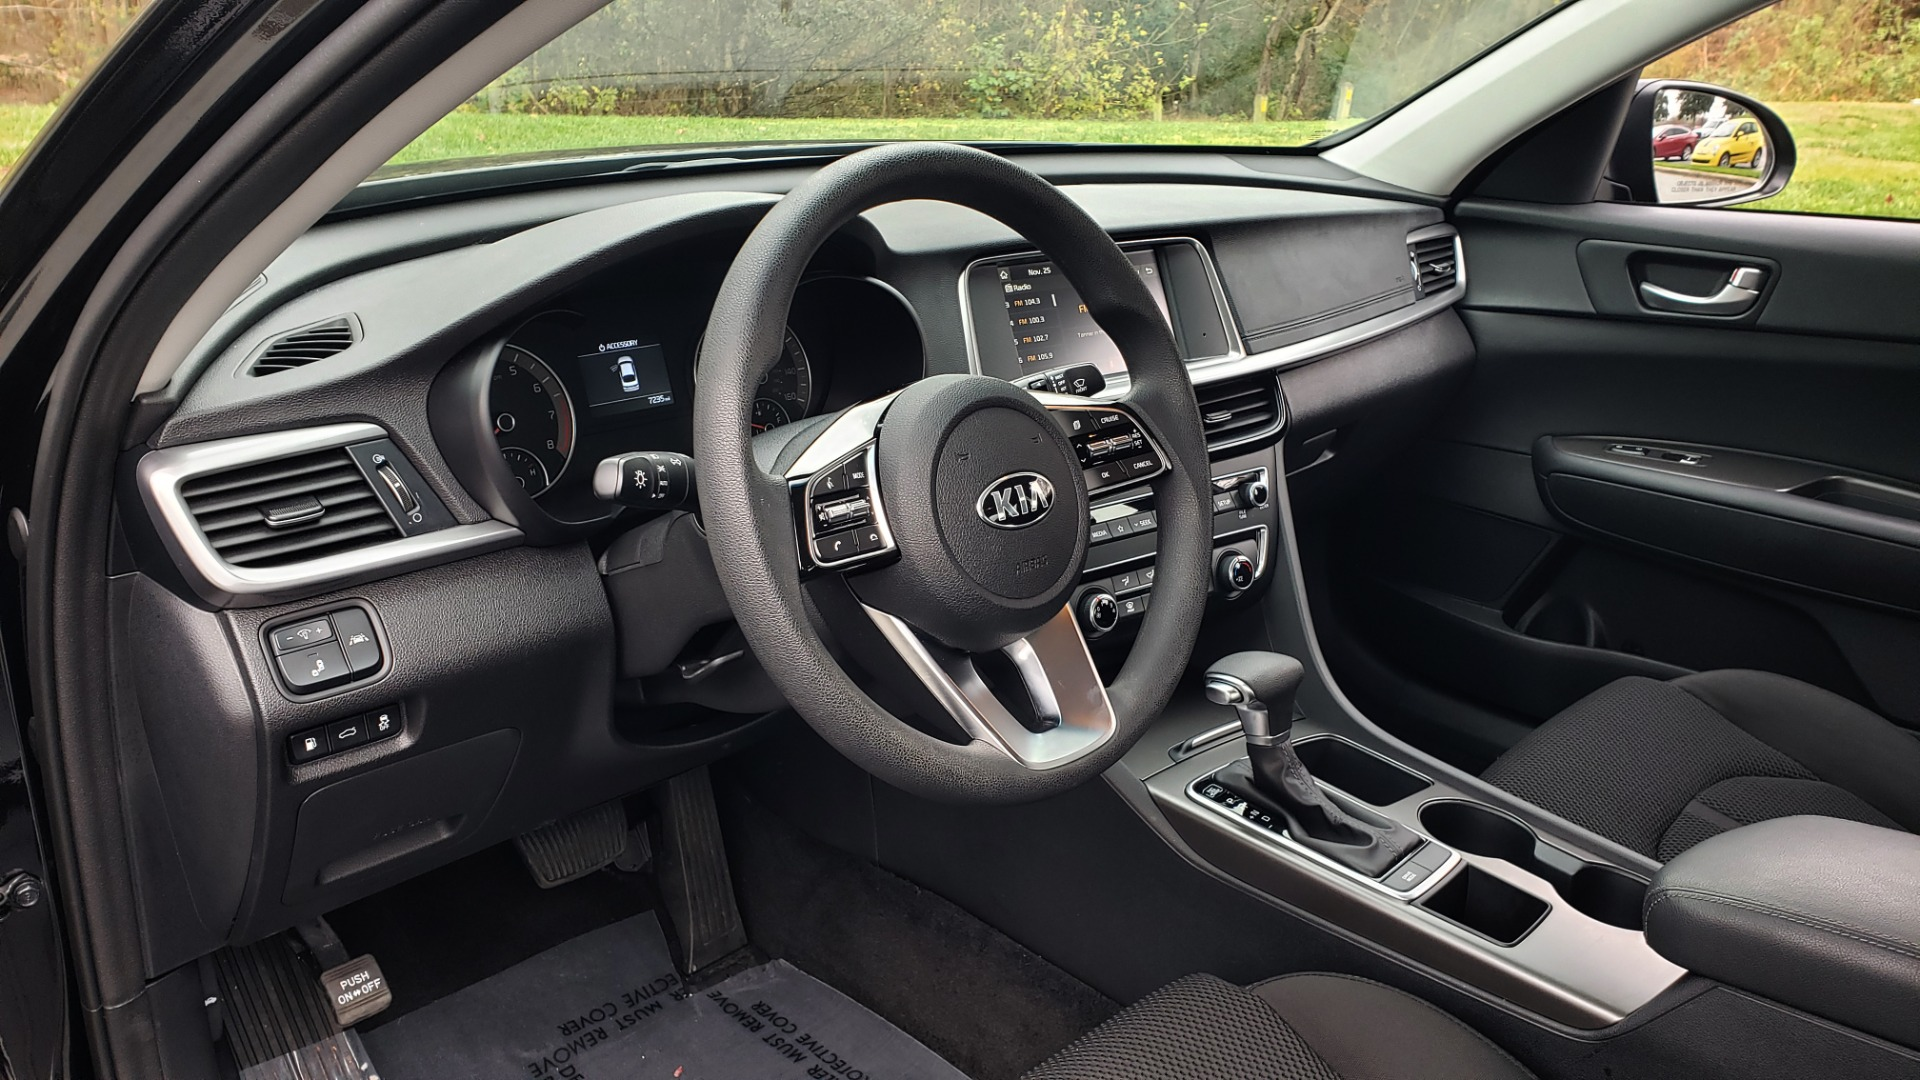 Used 2019 Kia OPTIMA LX AUTO / 2.4L 4-CYL / 6-SPD AUTO / REARVIEW / LOW MILES for sale $17,995 at Formula Imports in Charlotte NC 28227 33